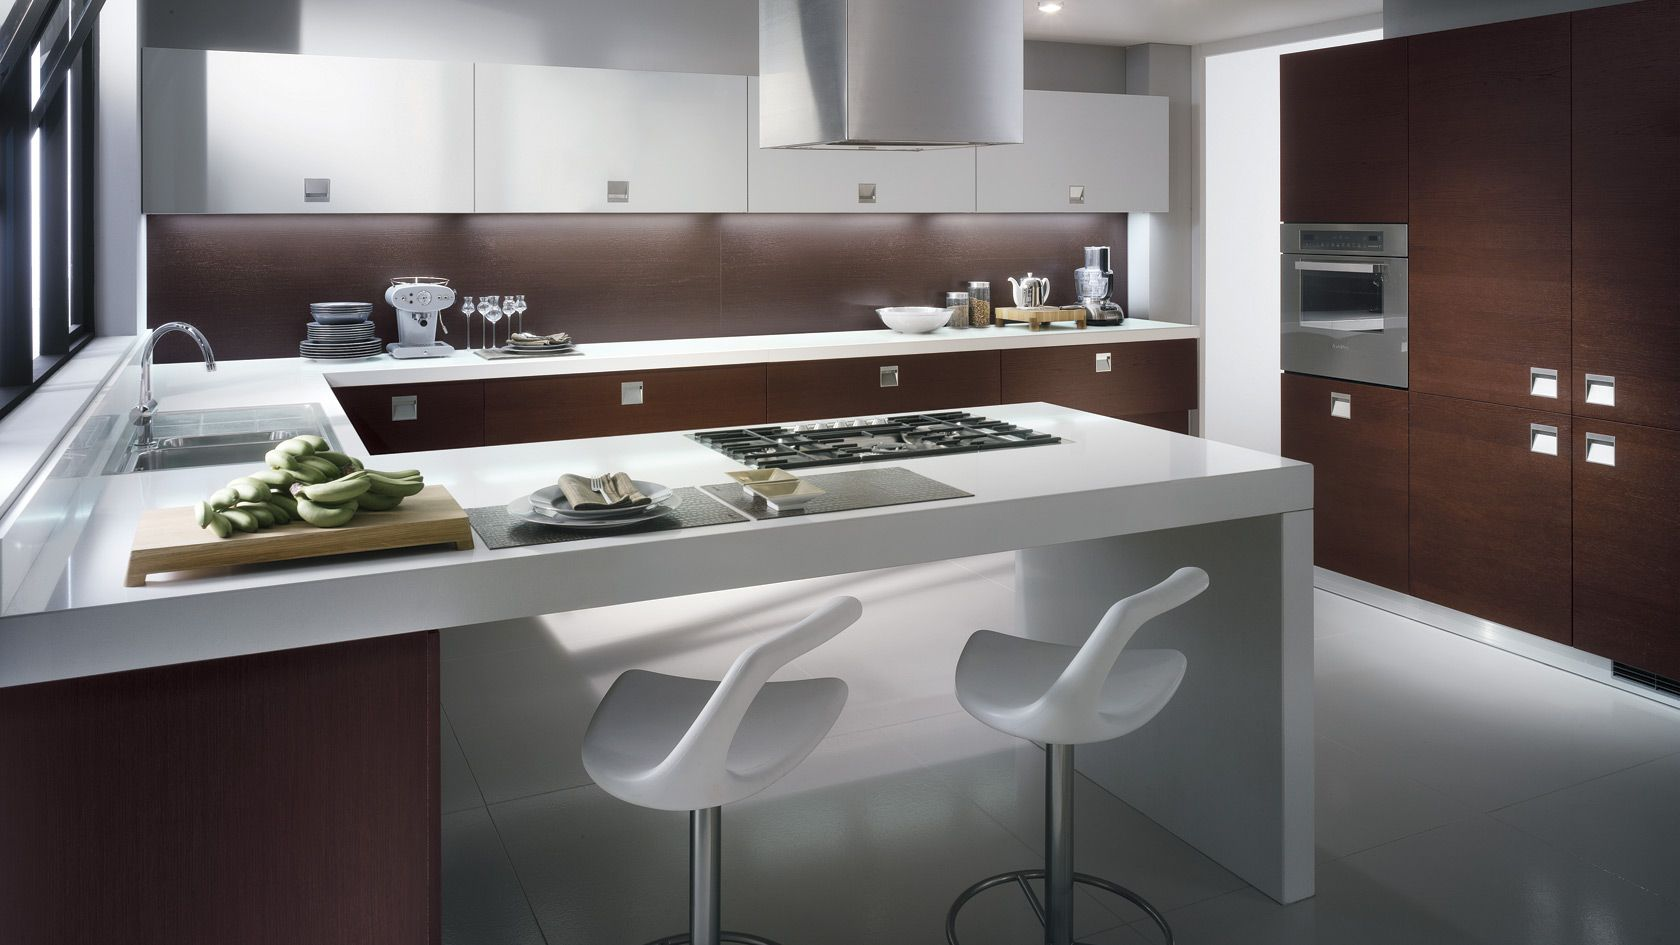 Kitchen Design Cabinet Photos With Bar Model #kitchendesignideas Stunning Kitchen Model Design Review